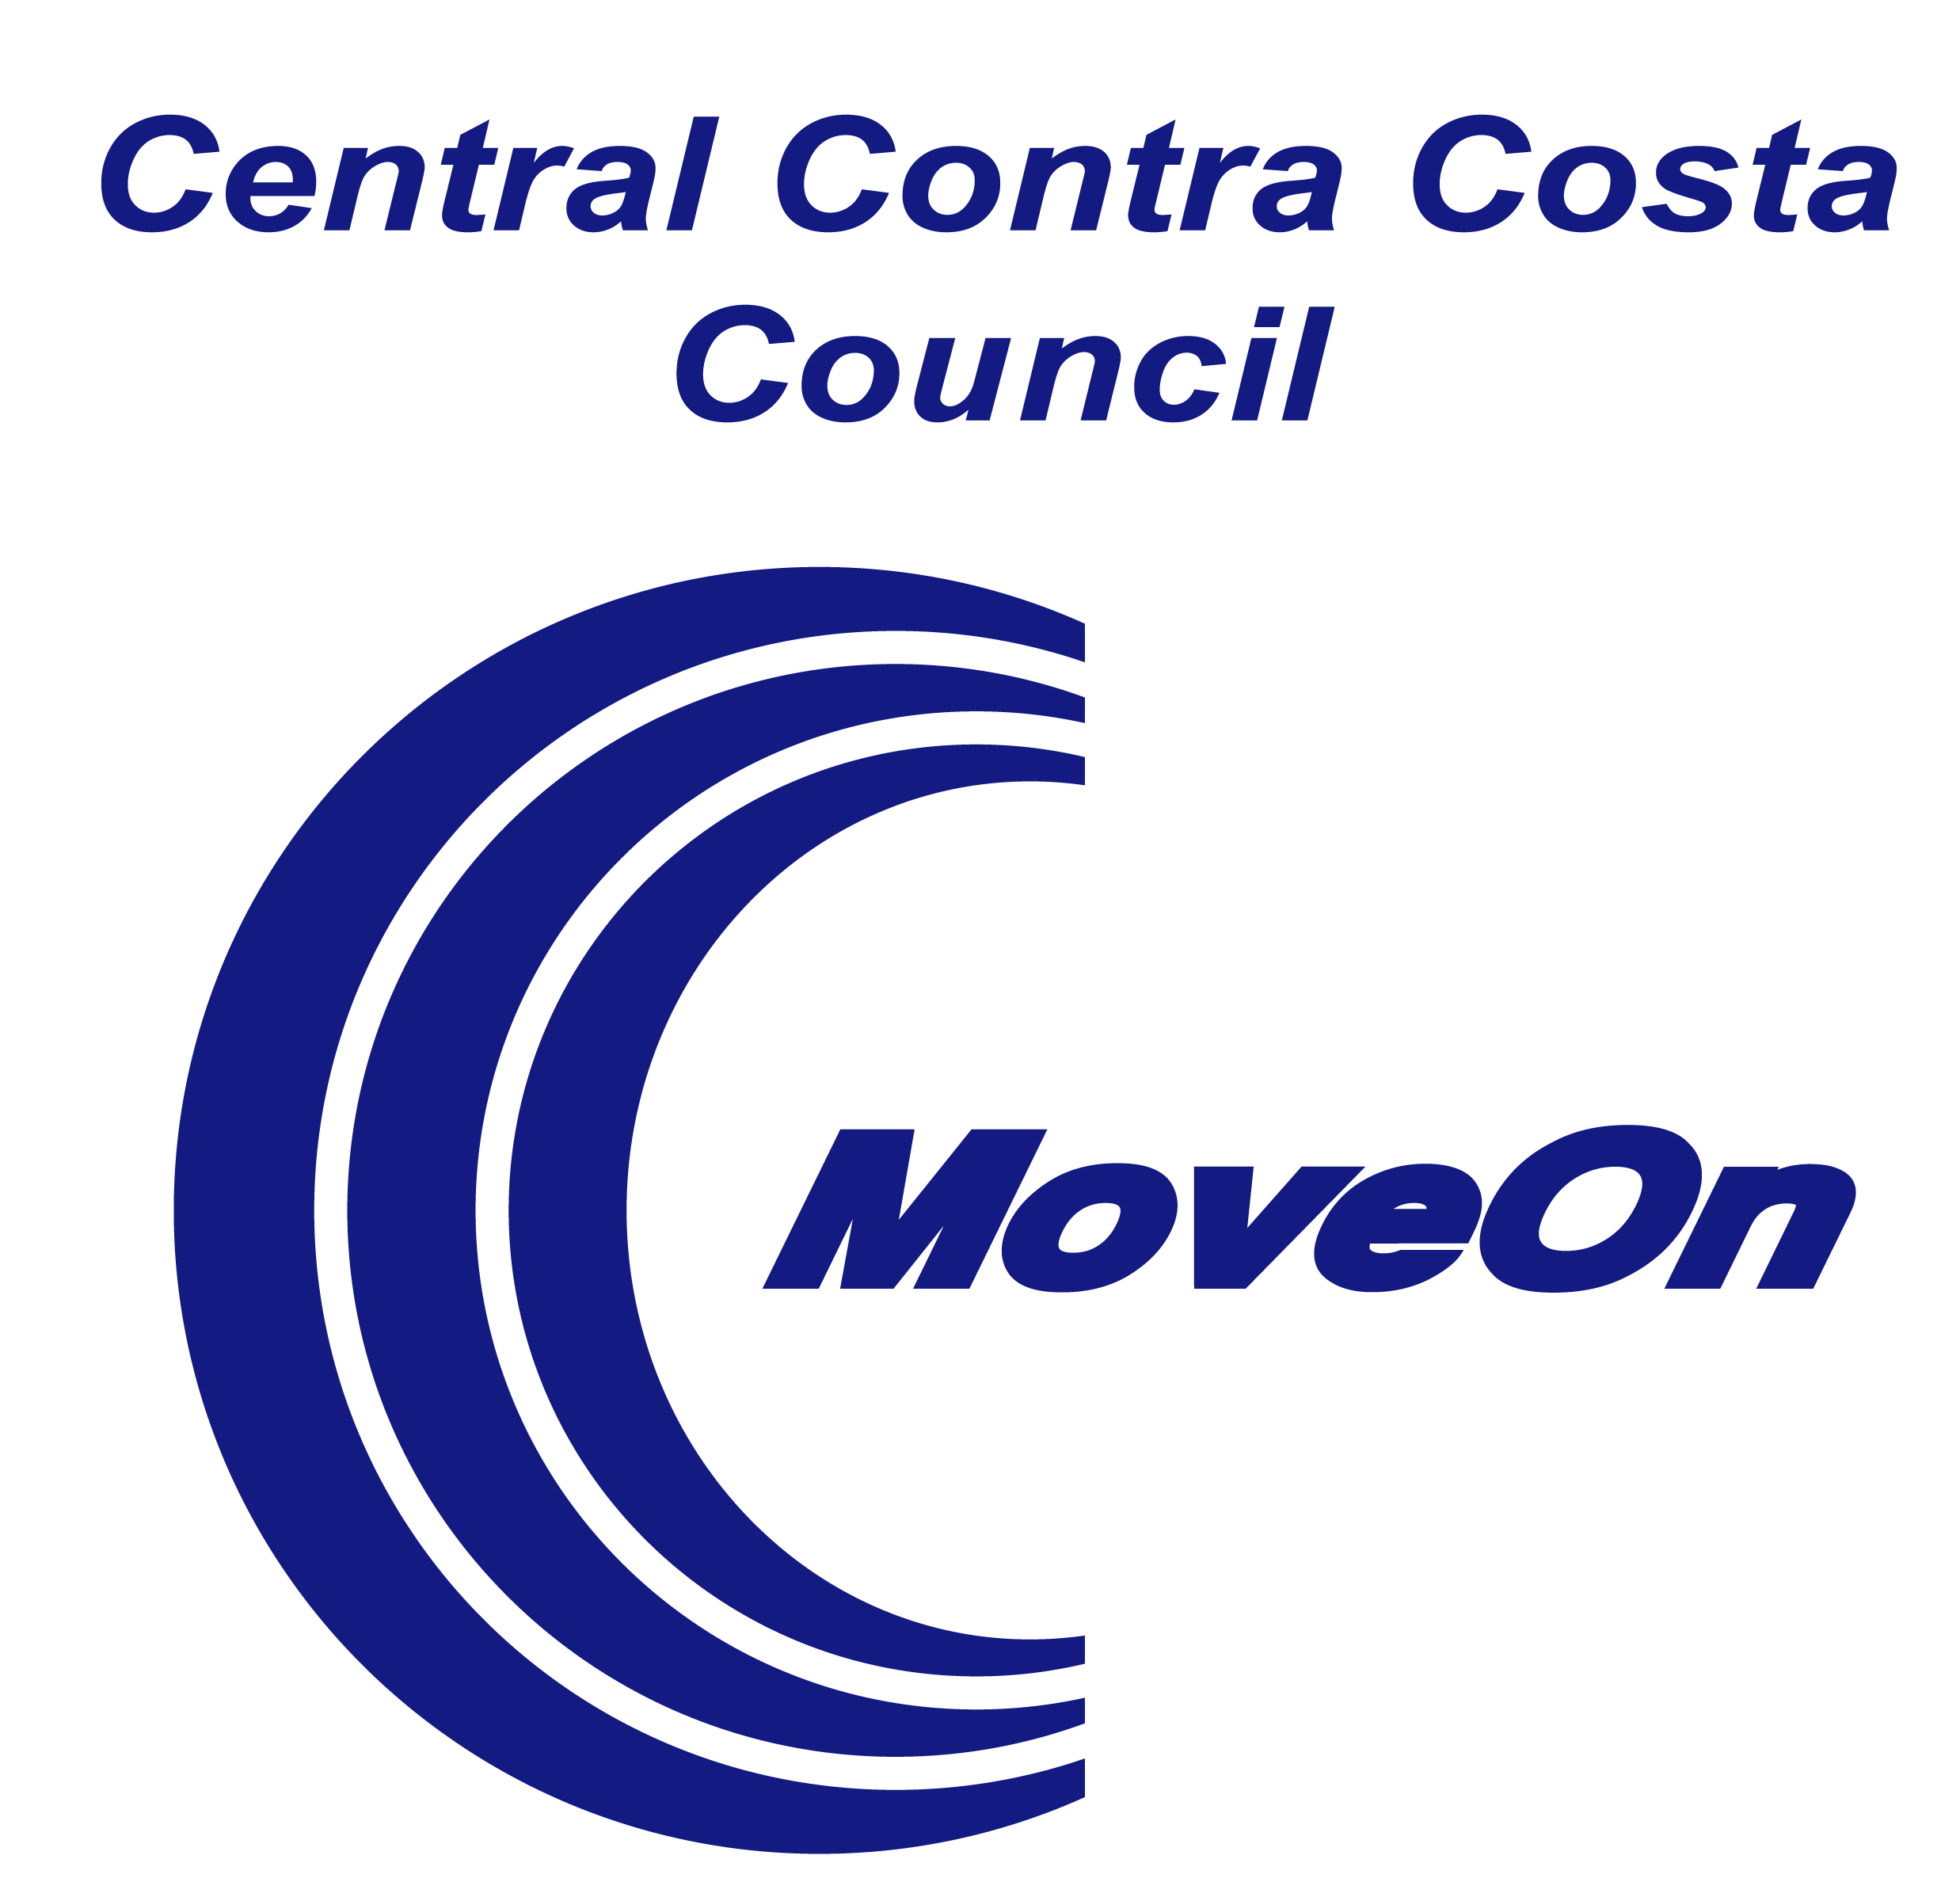 CCCC_MoveOn_logo_blue.png